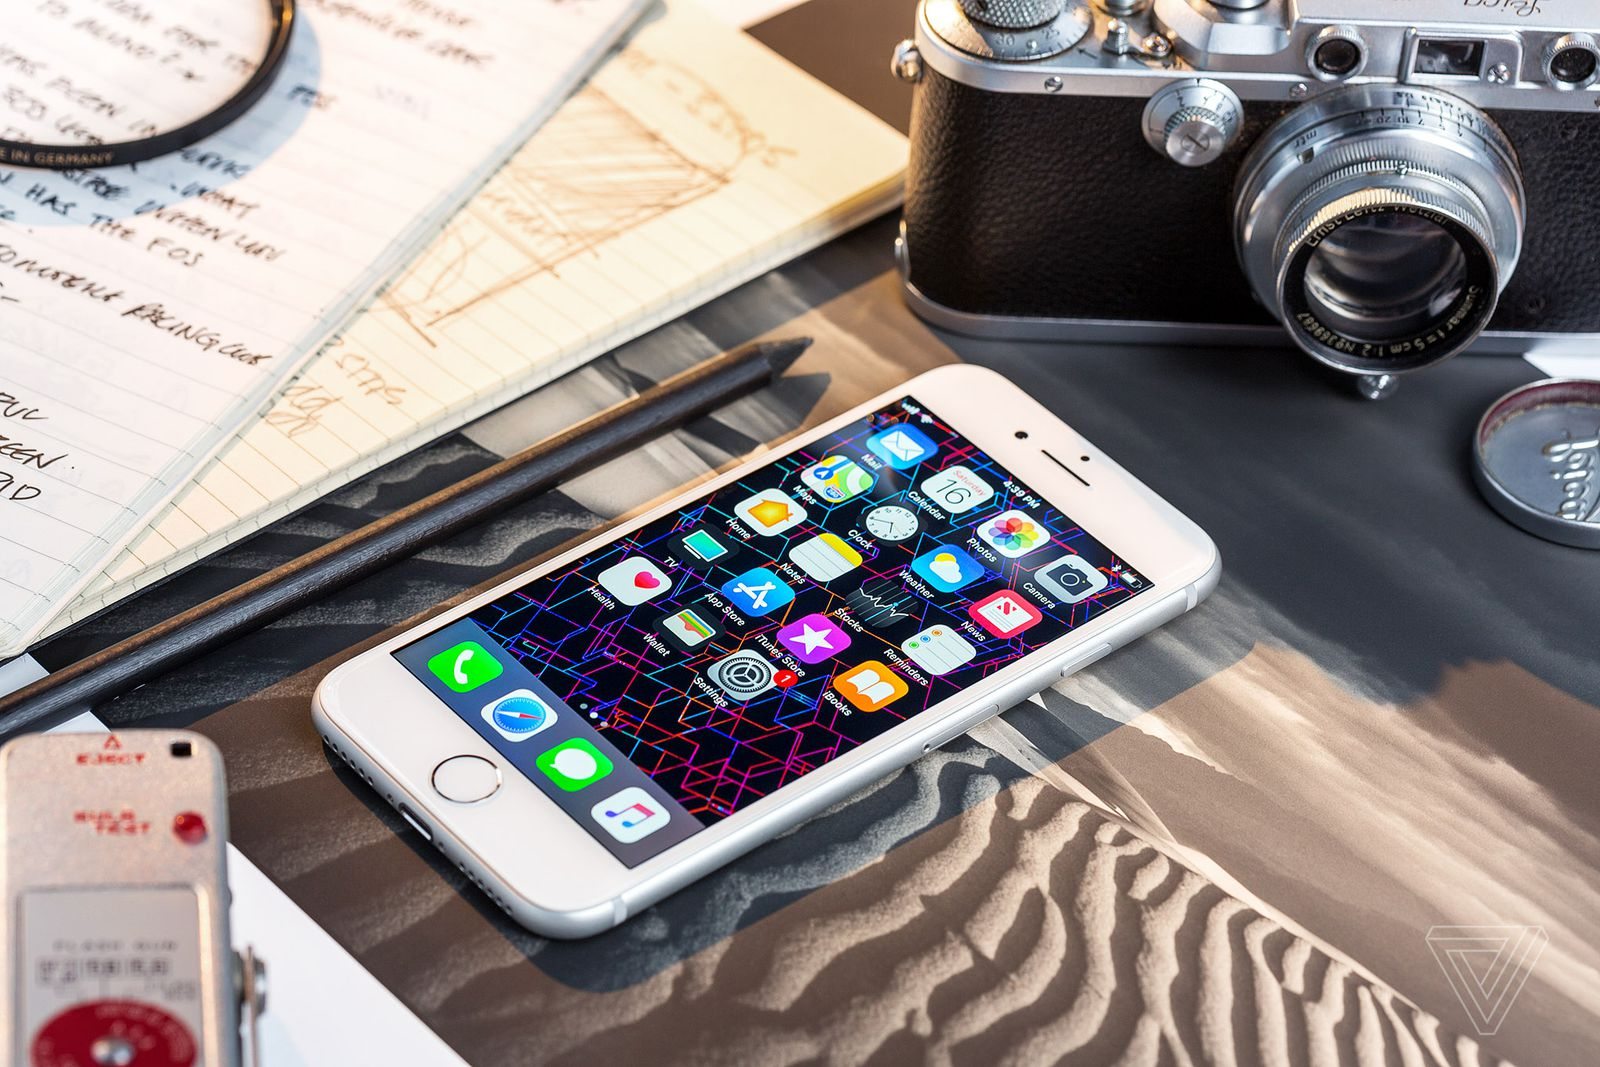 iPhone-8-iPhone-8-Plus-review-6